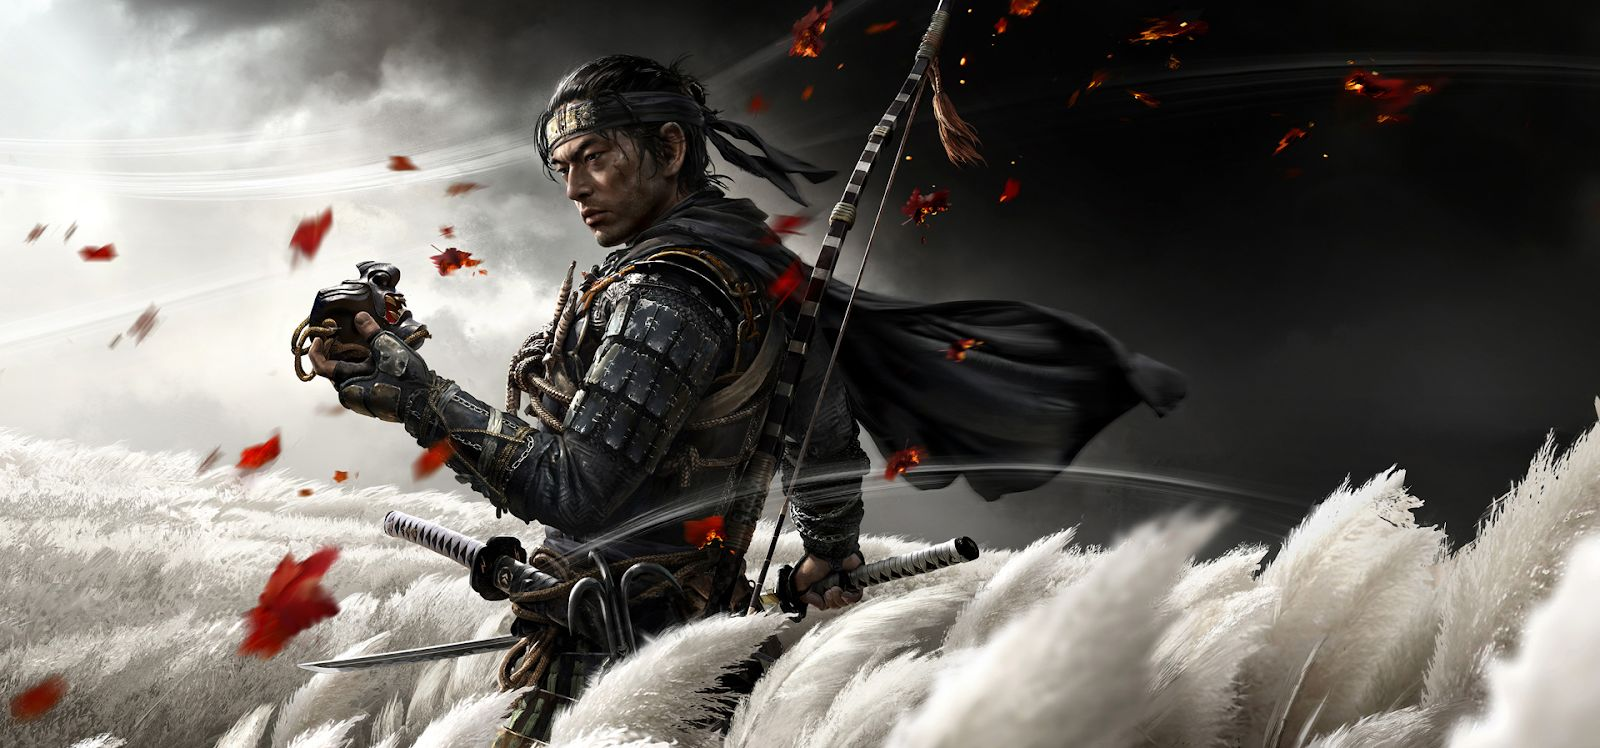 /ghost-of-tsushima-film-in-the-works-after-selling-over-65-million-copies-rlo33md feature image